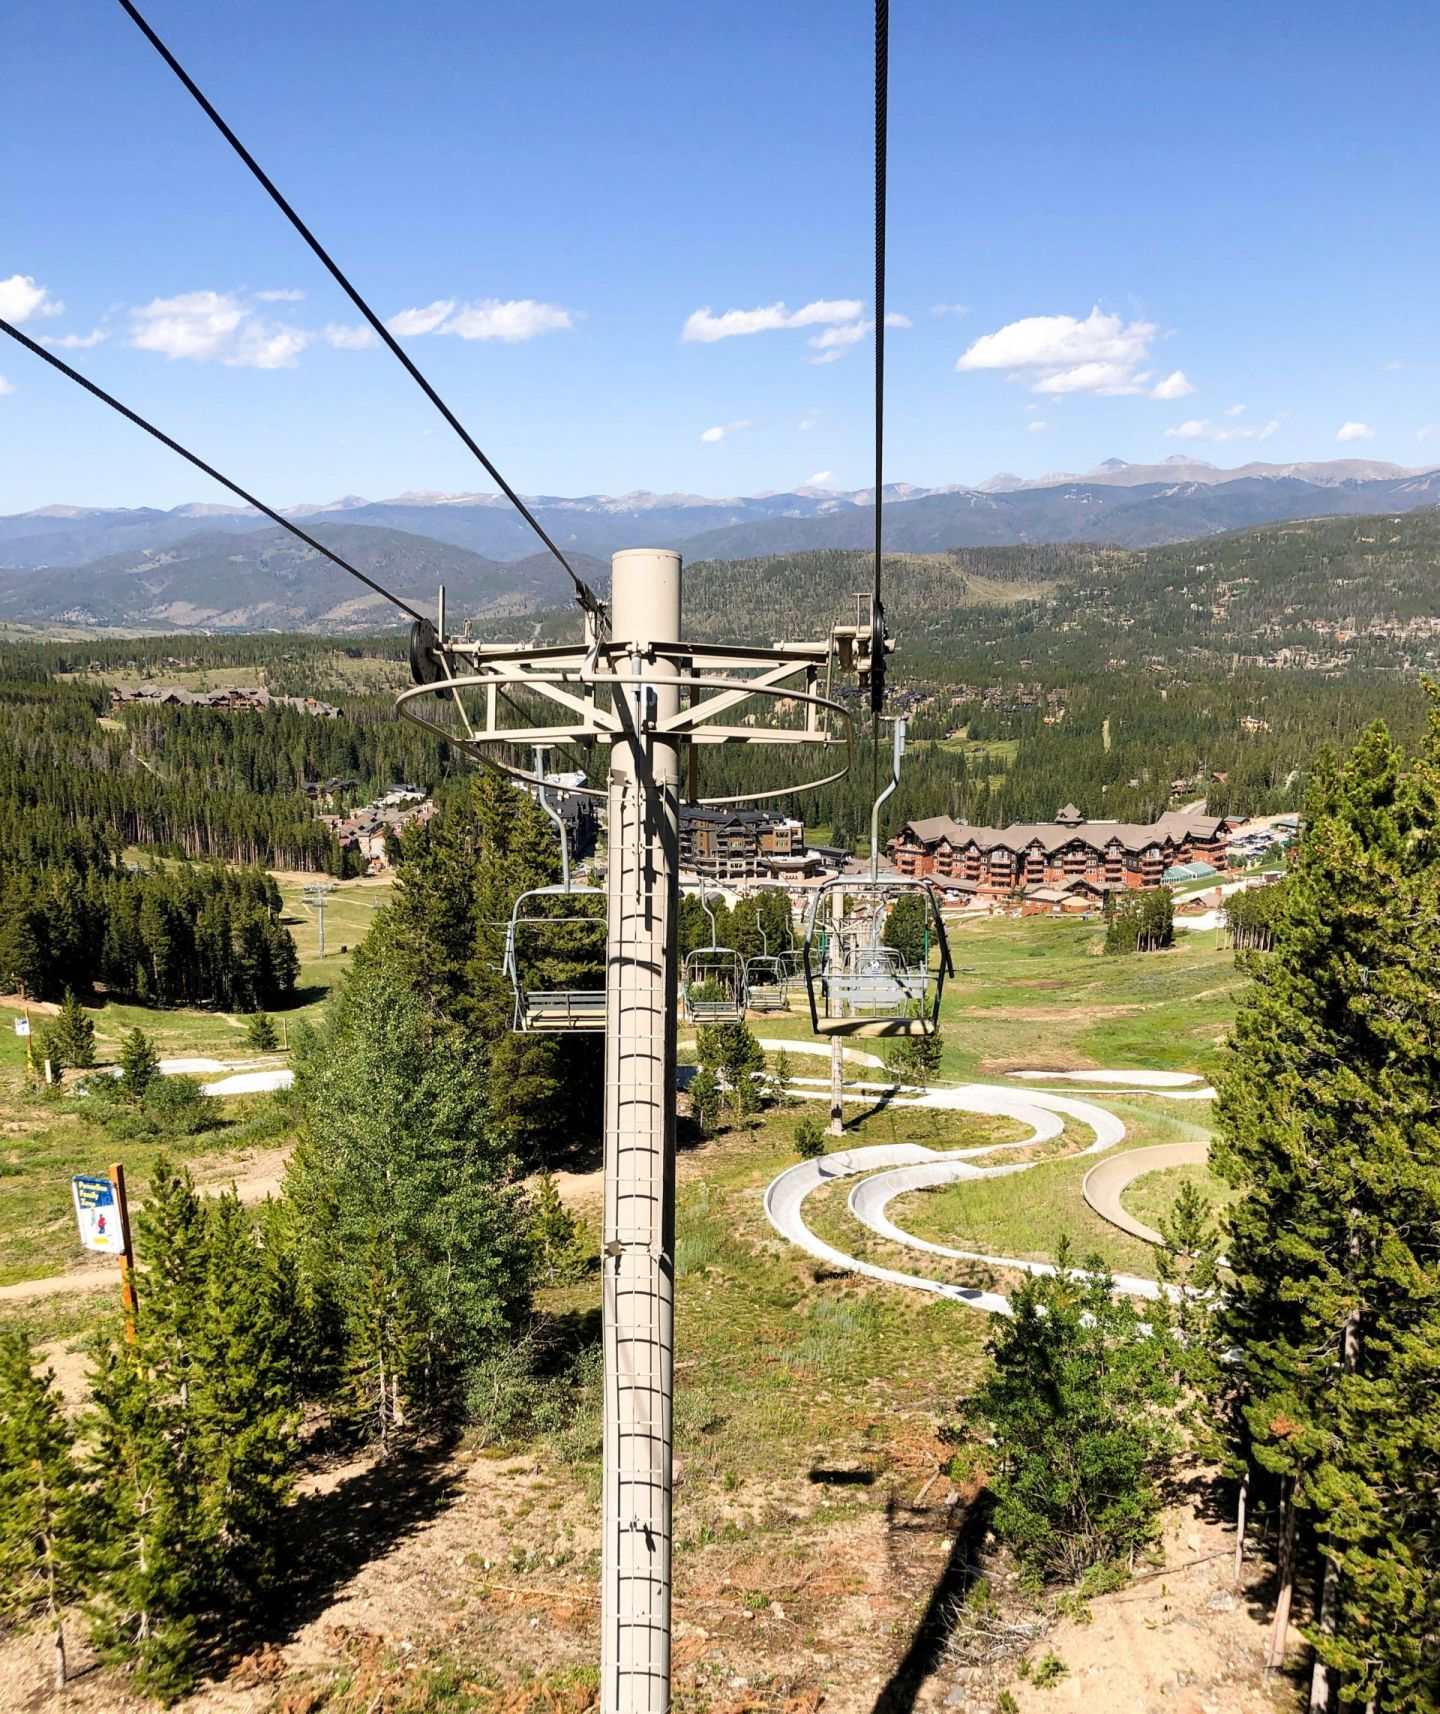 breckenridge top of mountain - breckenridge alpine slide